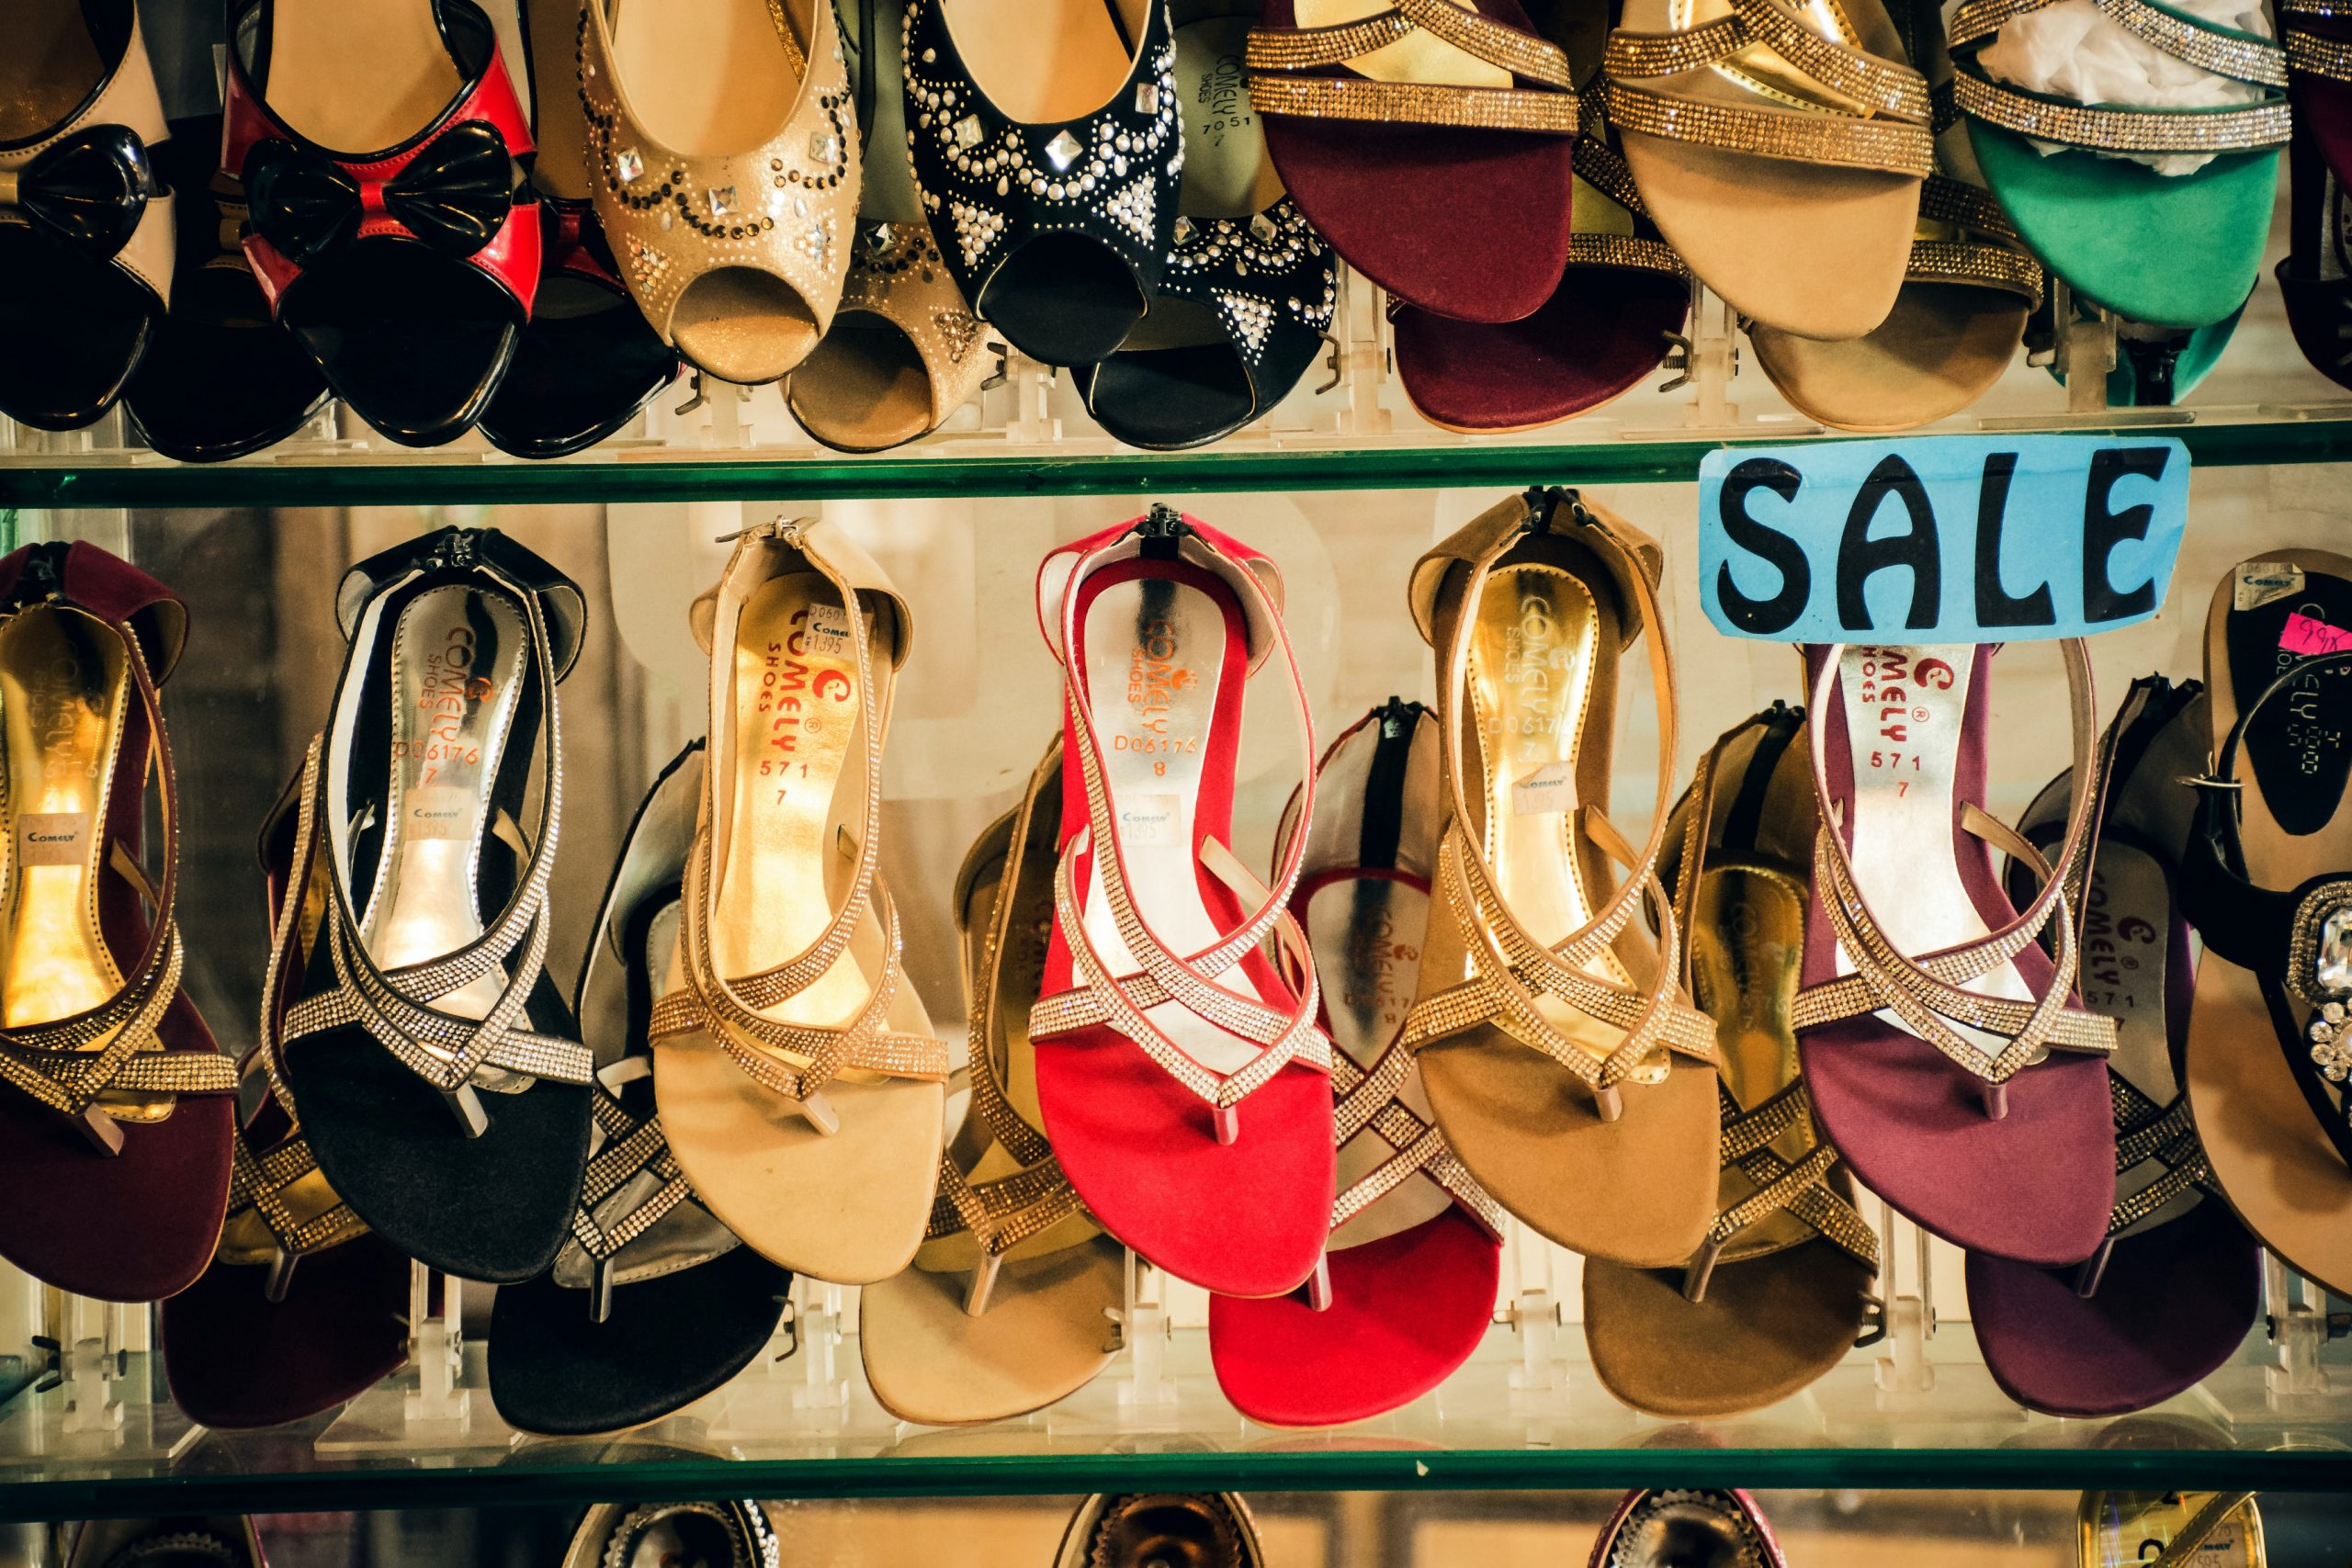 High heels on sale